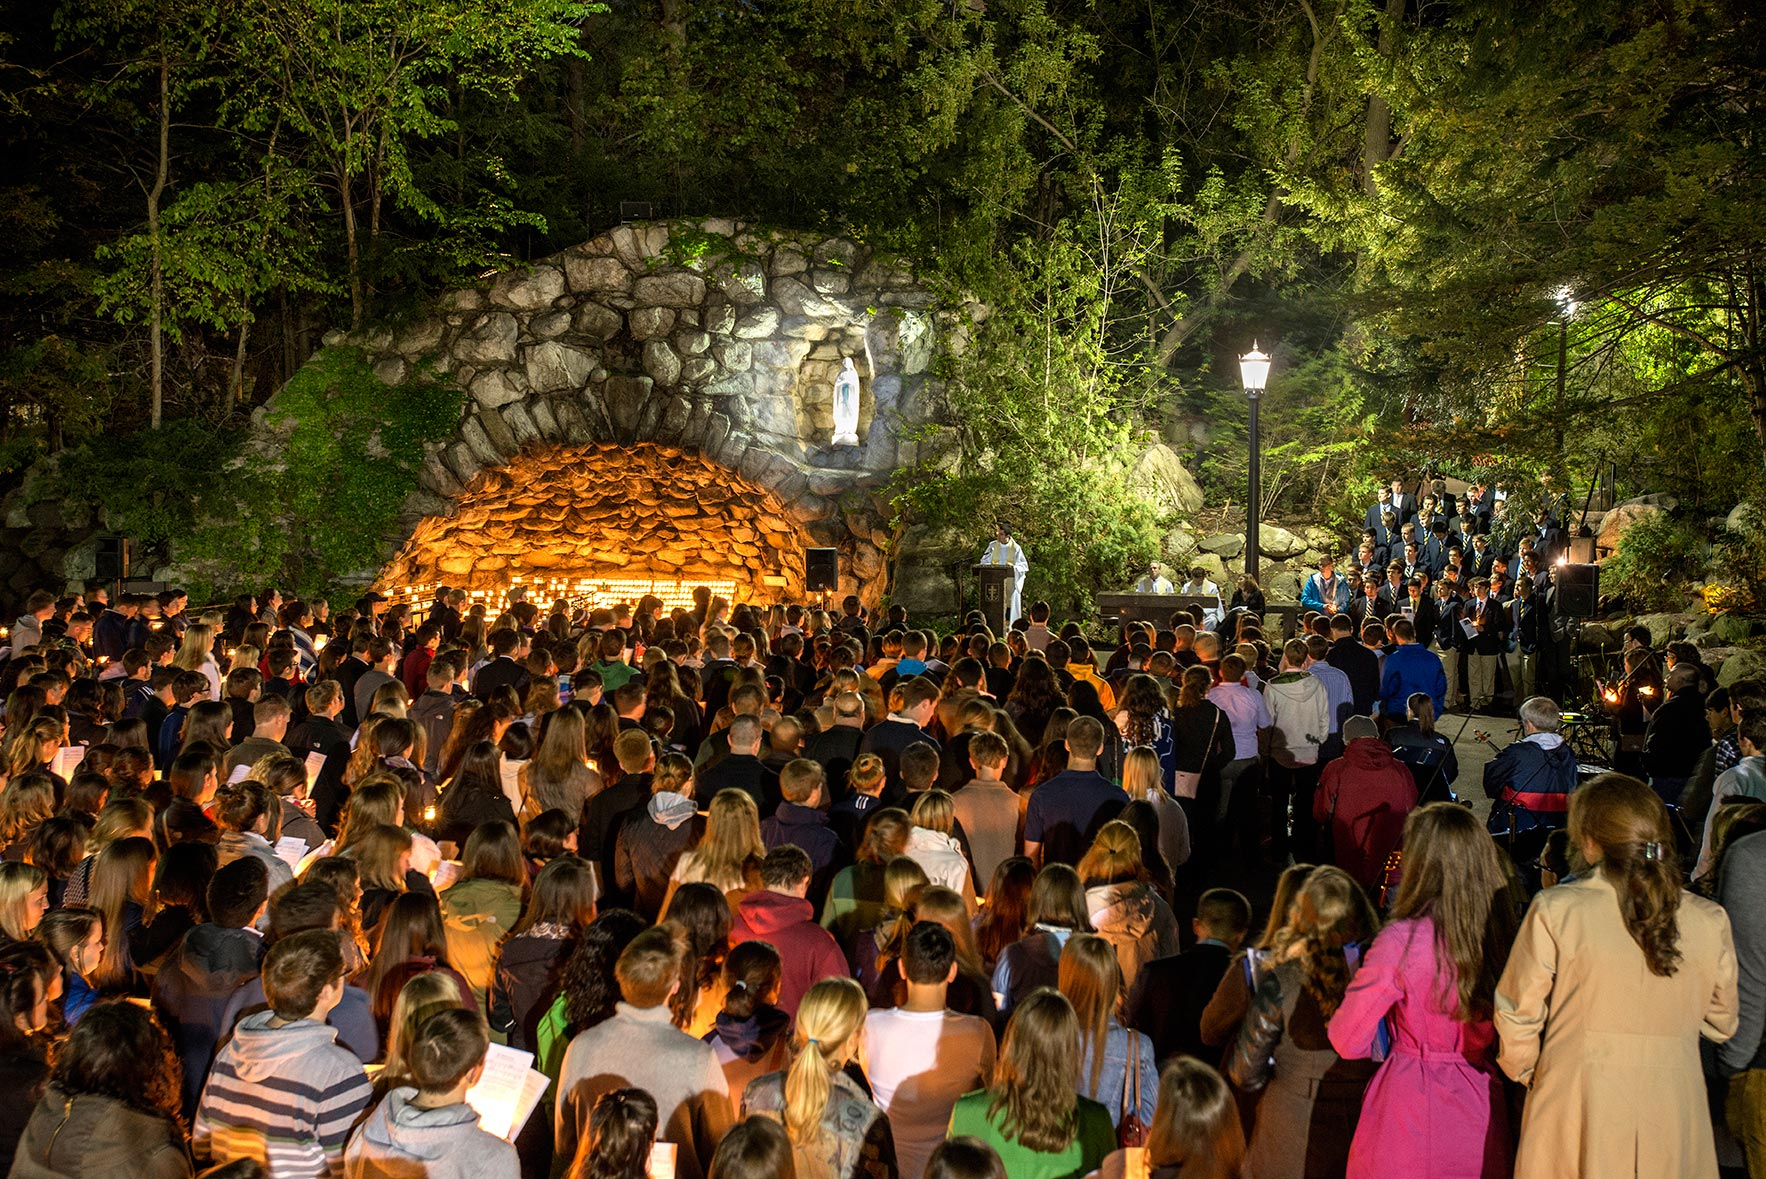 BJ - The seniors' last visit to the Grotto is my favorite Commencement event to shoot because it is visually beautiful and the emotional element is palpable. May 15, 2014; Seniors gather at the Grotto for their last visit before the 2014 Commencement. Photo by Barbara Johnston/University of Notre Dame